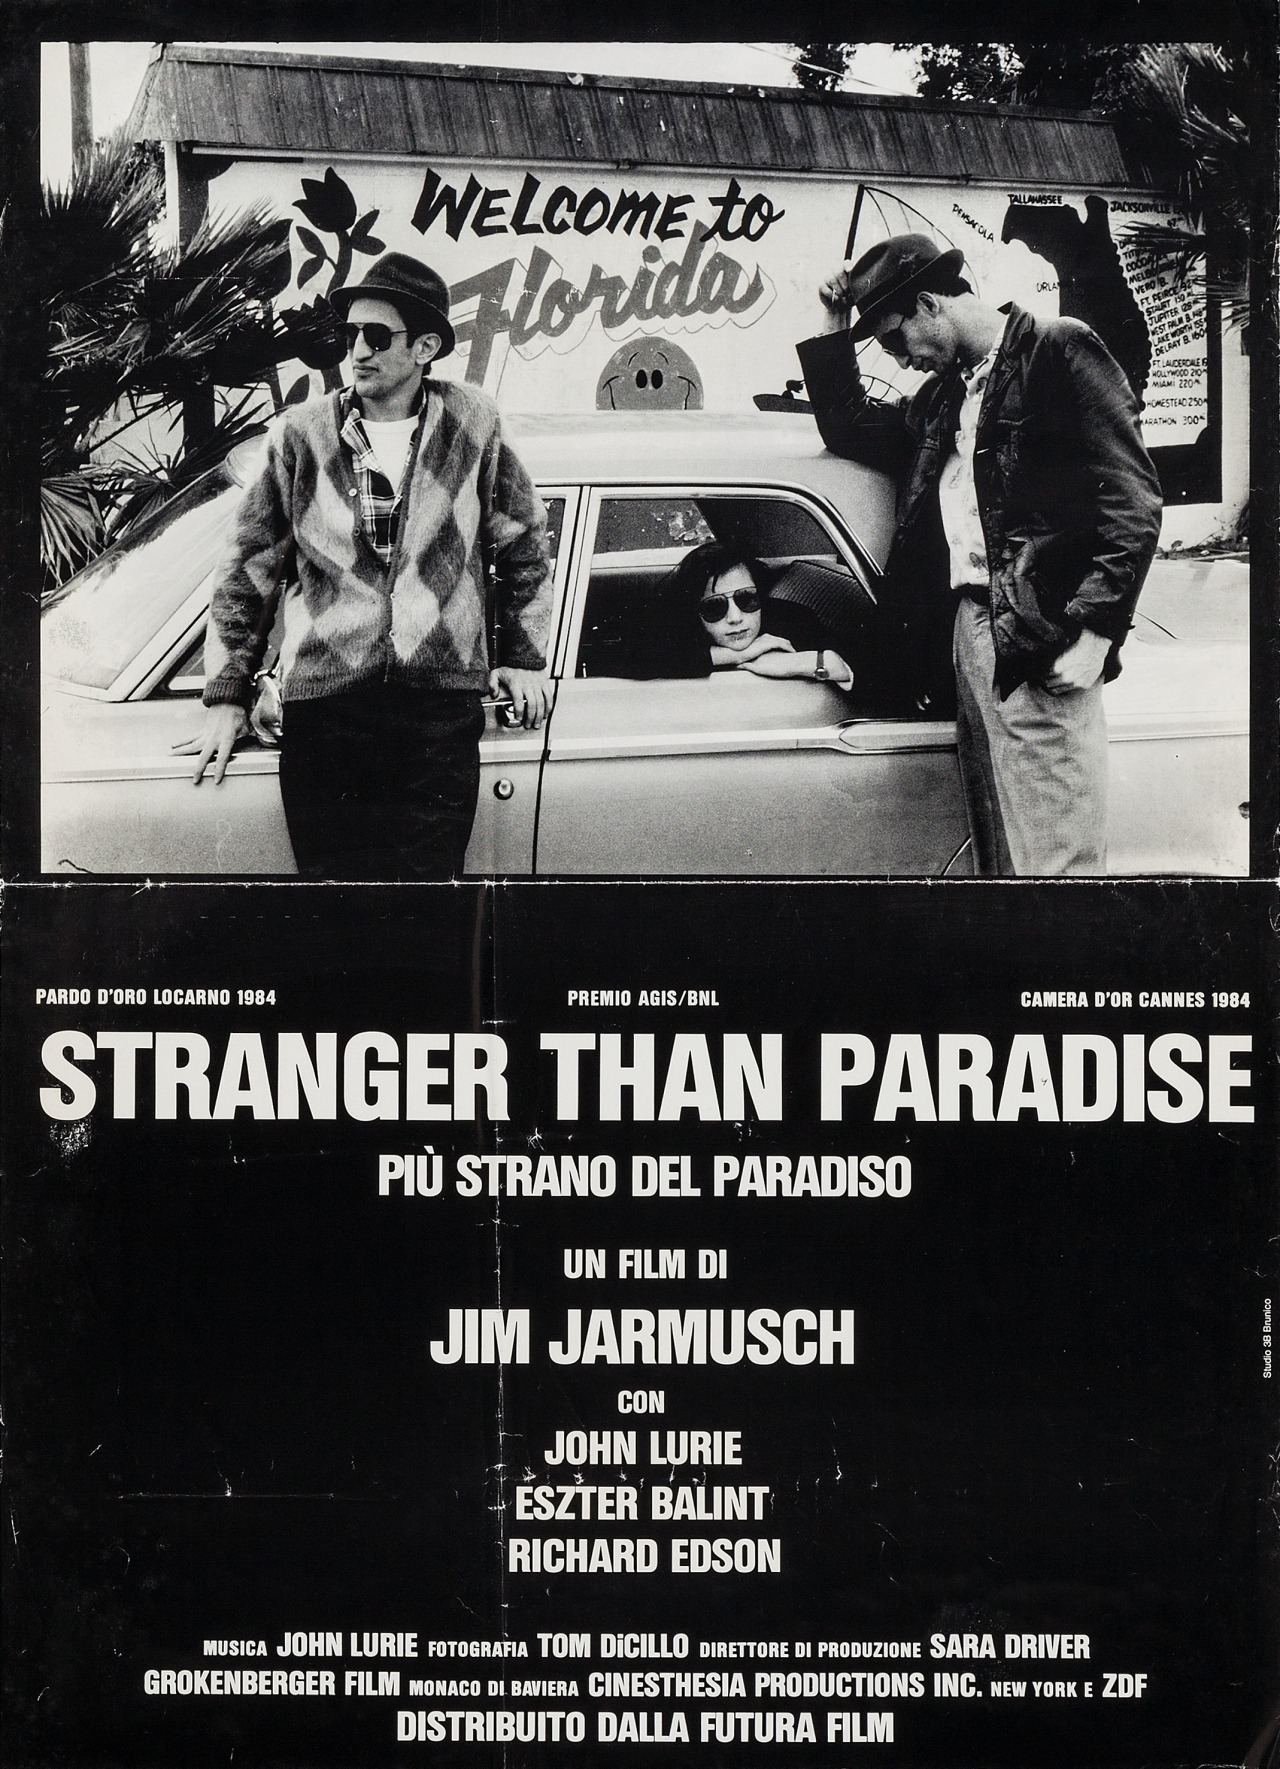 7 ART CINEMA | Jim Jarmusch | 1980 - Permanent Vacation, 1983 - Stranger Than Paradise, 1986 - Down by Law, 1989 - Mystery Train, 1991 - Night on Earth, 1995 - Dead Man, 1999 - Ghost Dog : The Way of the Samurai, 2003 - Coffee and Cigarettes, 2005 - Broken Flowers, 2009 - The Limits of Control, 2013 - Only Lovers Left Alive, 2016 - Paterson | American independent film director, screenwriter, actor, producer, editor, composer | Technical Specifications Sheet - Videos - Informations - Filmography - Cast - Dvd Covers - Film Posters - Photographs